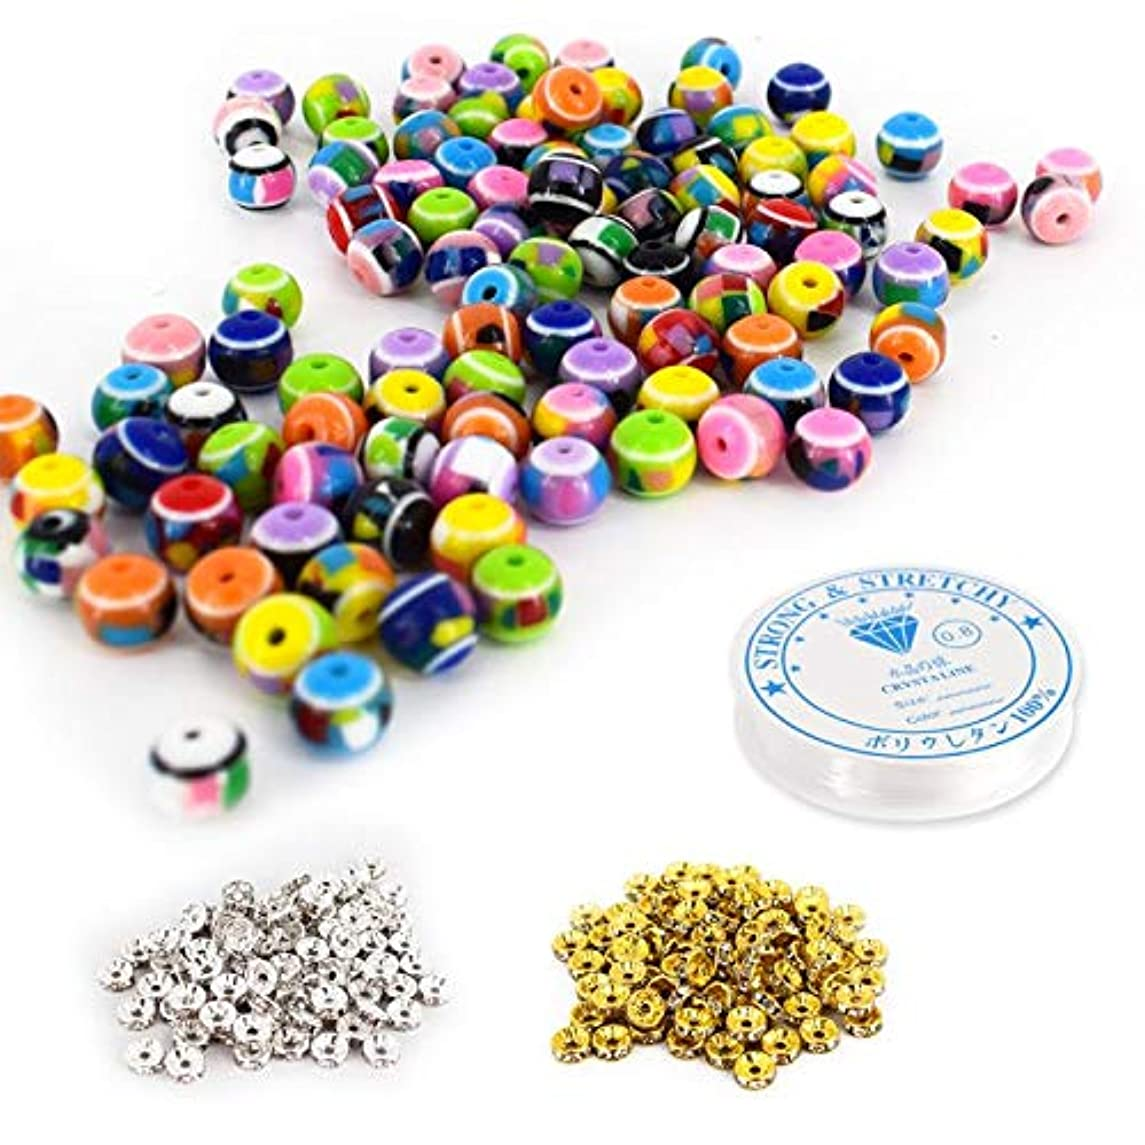 300pcs Resin Round Beads 8mm Handmade Bulk Beads Flower Pattern Beads for DIY Beading Jewelry with 100 Pcs Spacer Beads & 1 Roll Crystal String for Jewelry Making(Resin Beads, 8mm)